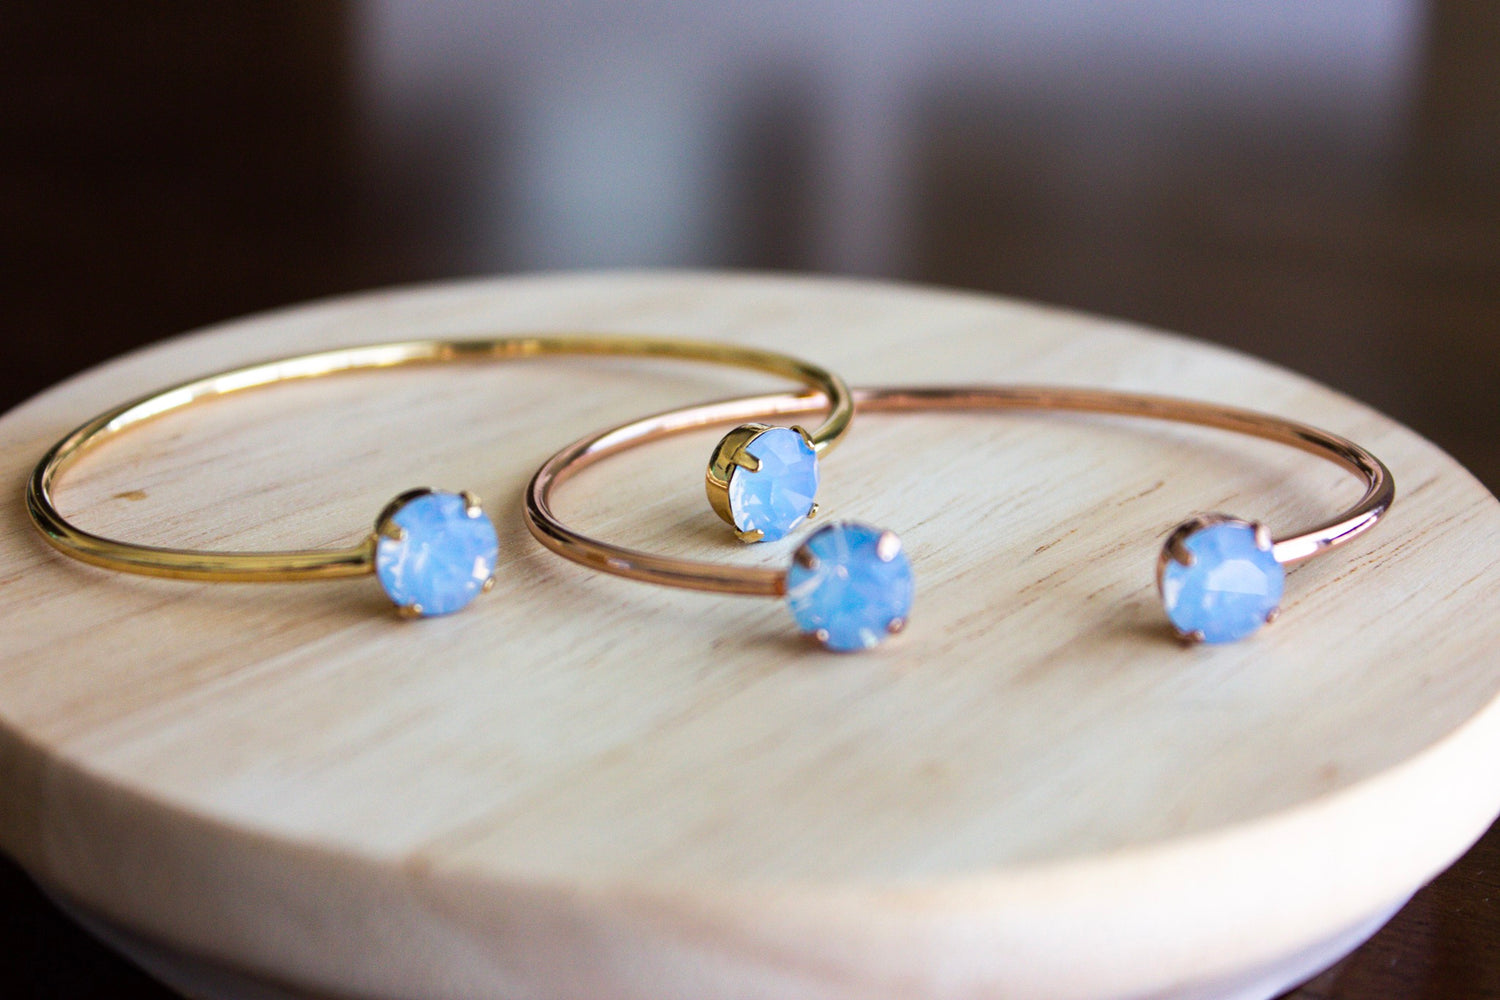 Air Blue Opal Swarovski Balance Bangle - Limited